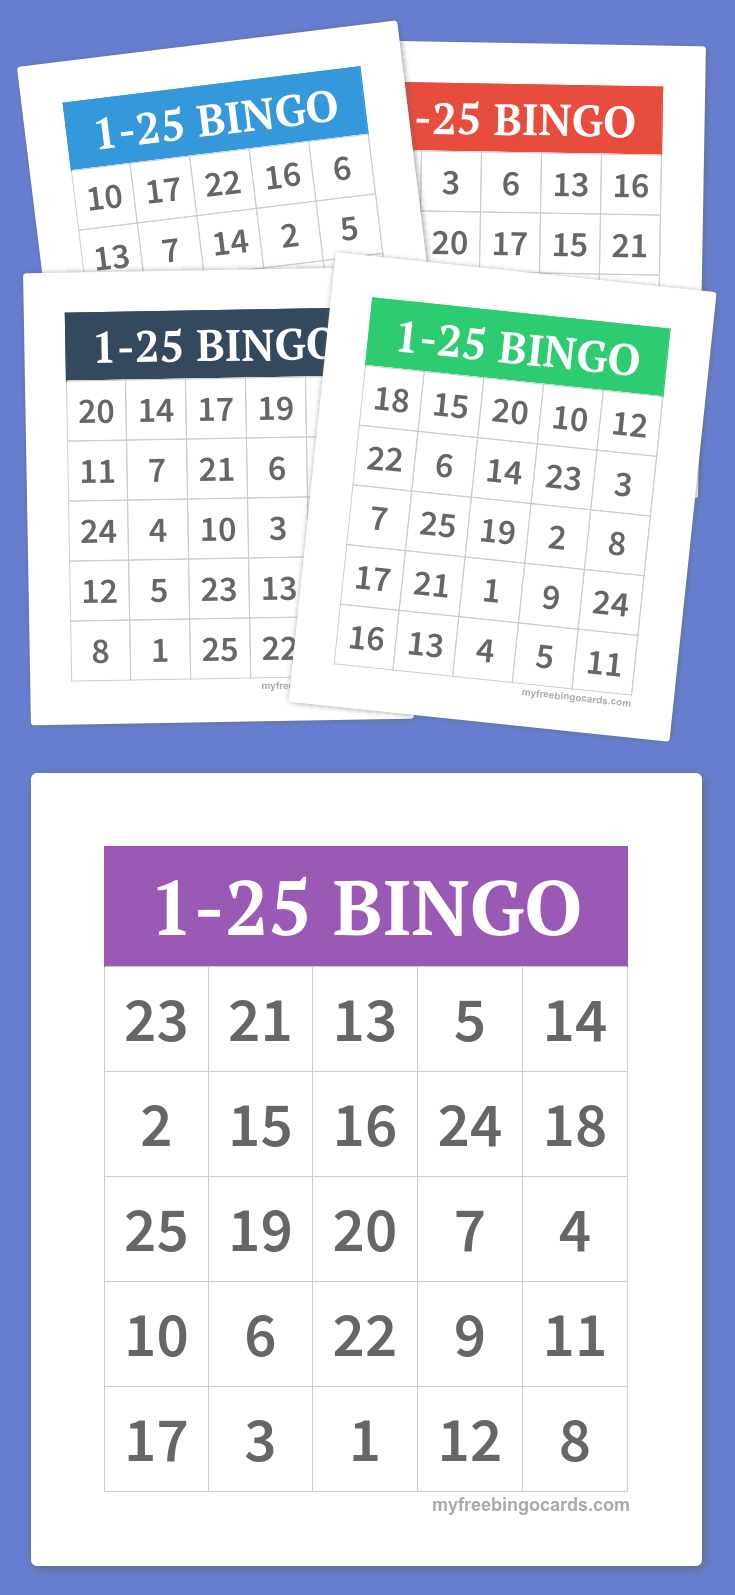 Make Your Own Free Bingo Cards At Myfreebingocards Com Free Printable Bingo Cards Bingo Cards Printable Bingo Cards